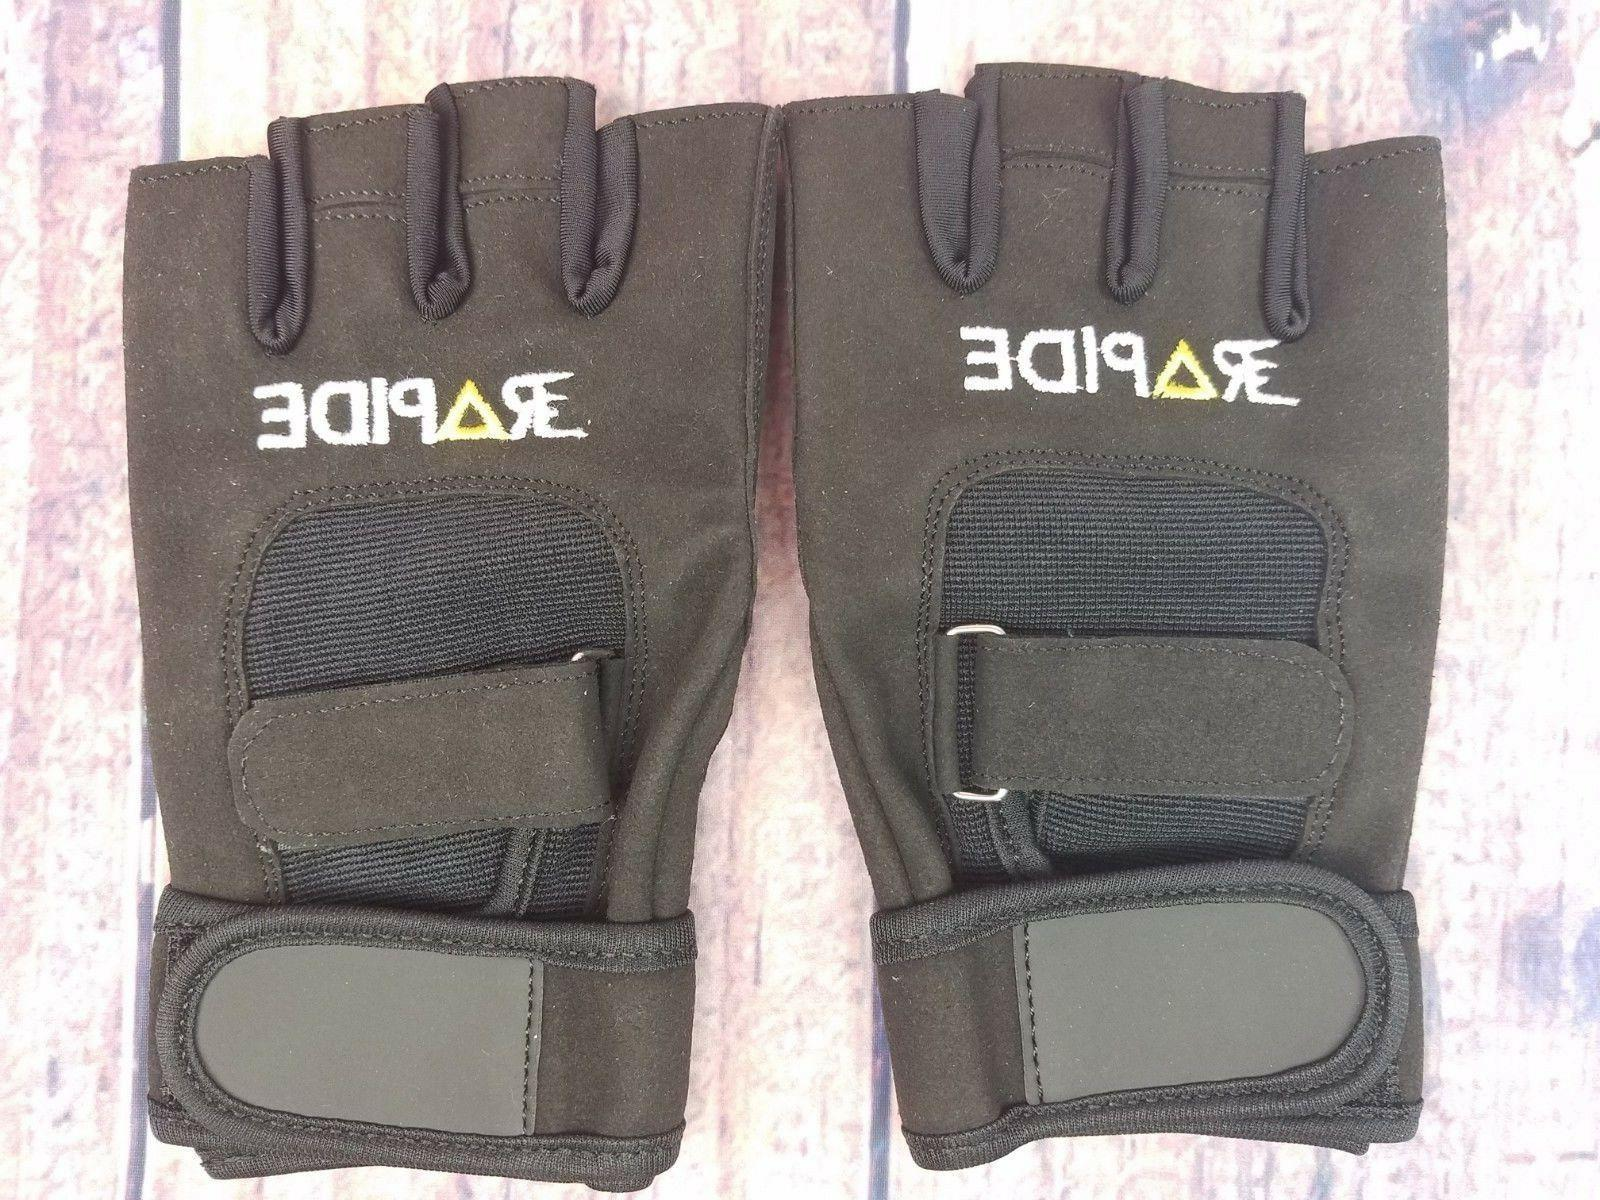 weightlifting gloves black washable leather with straps